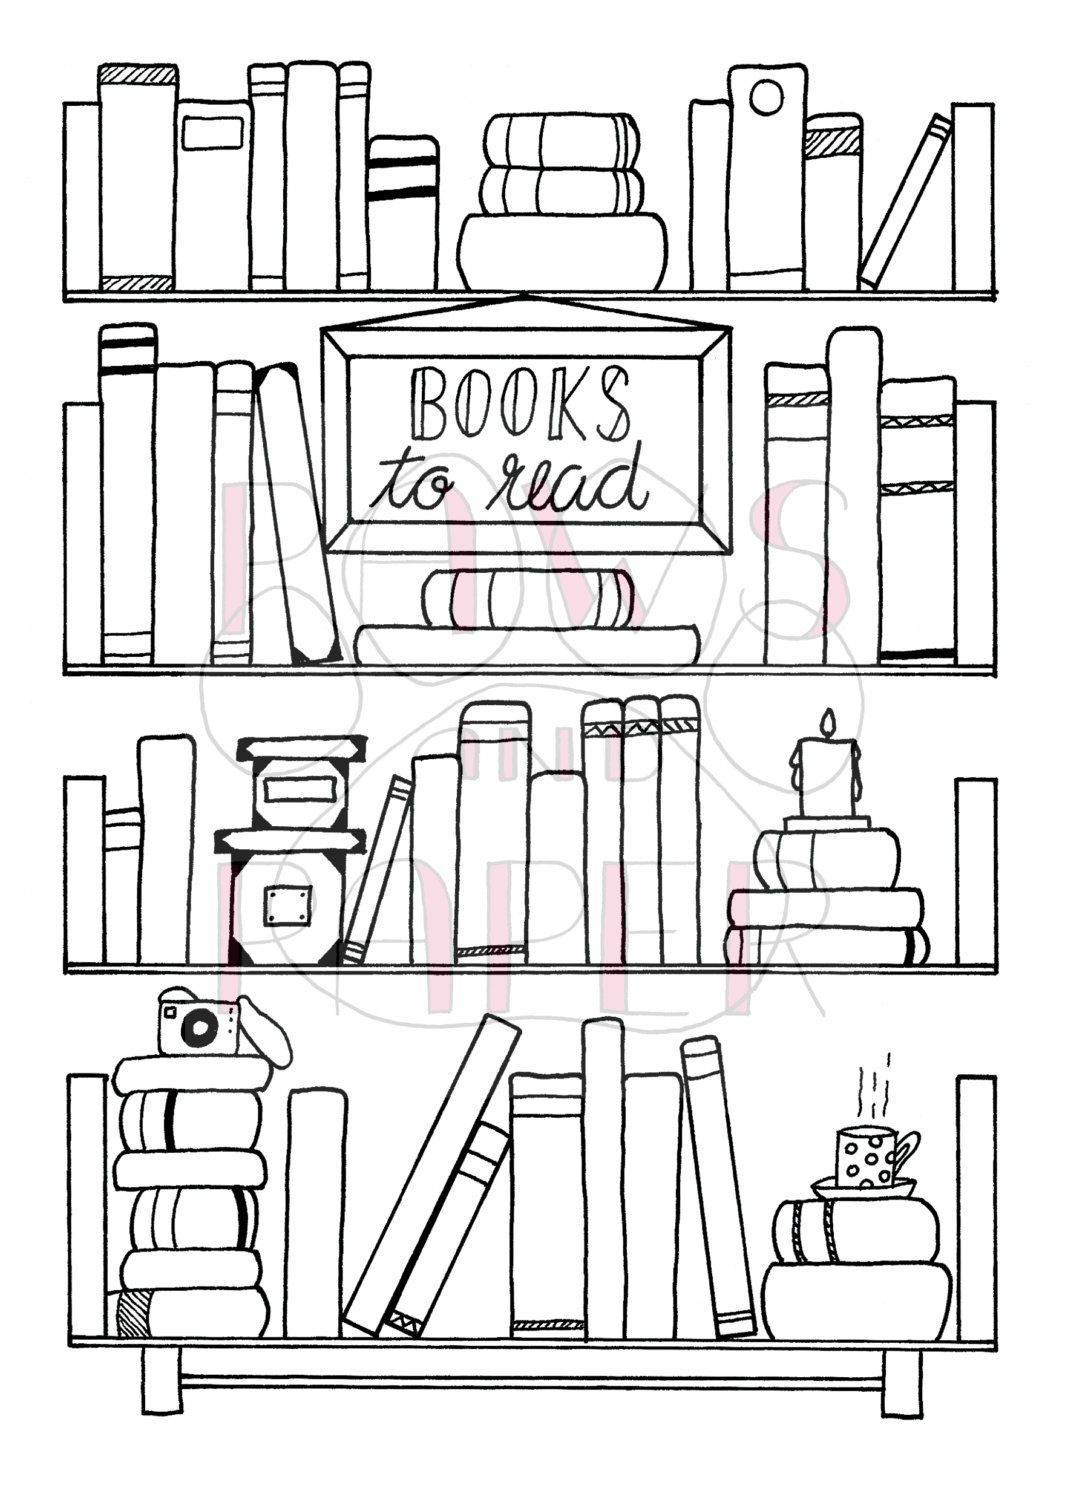 Books to read printable for your planner or Bullet Journal